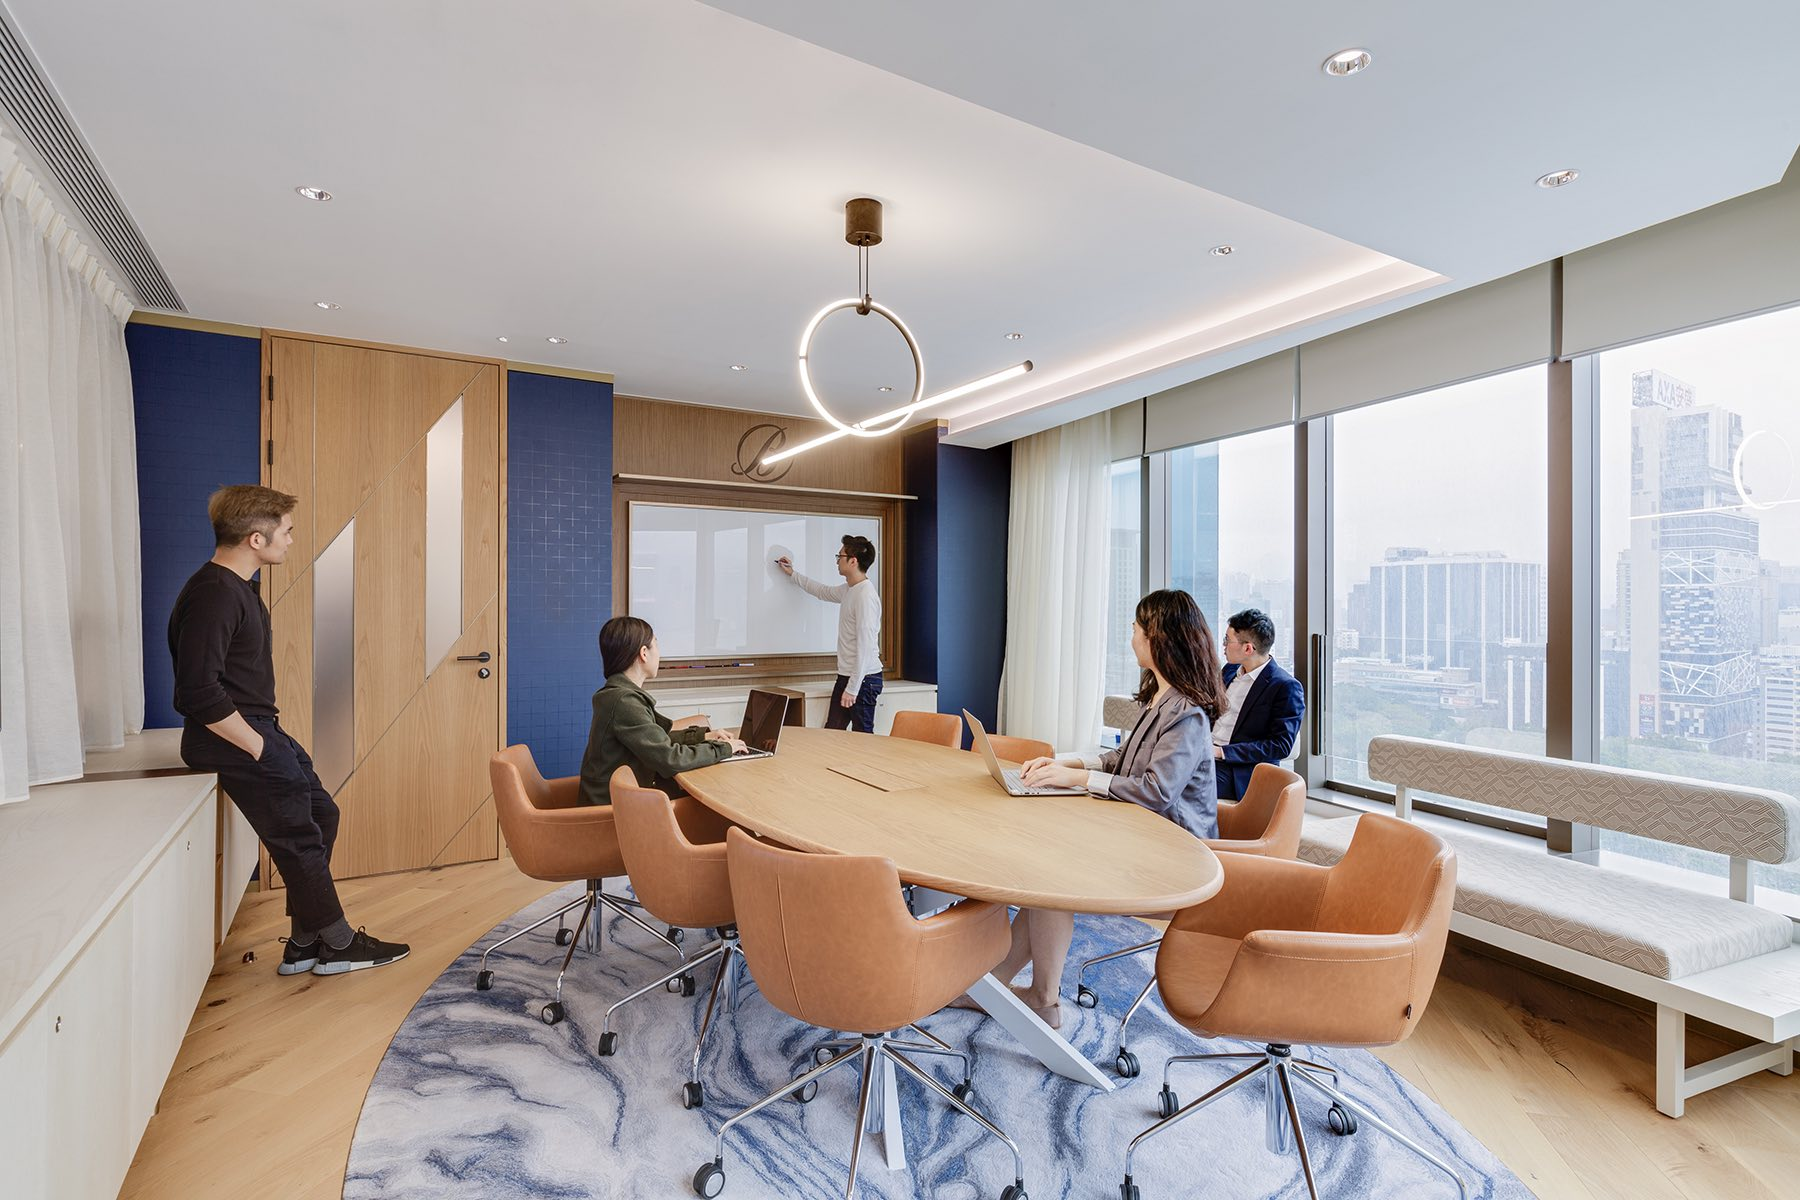 pernod-ricard-hong-kong-office-12